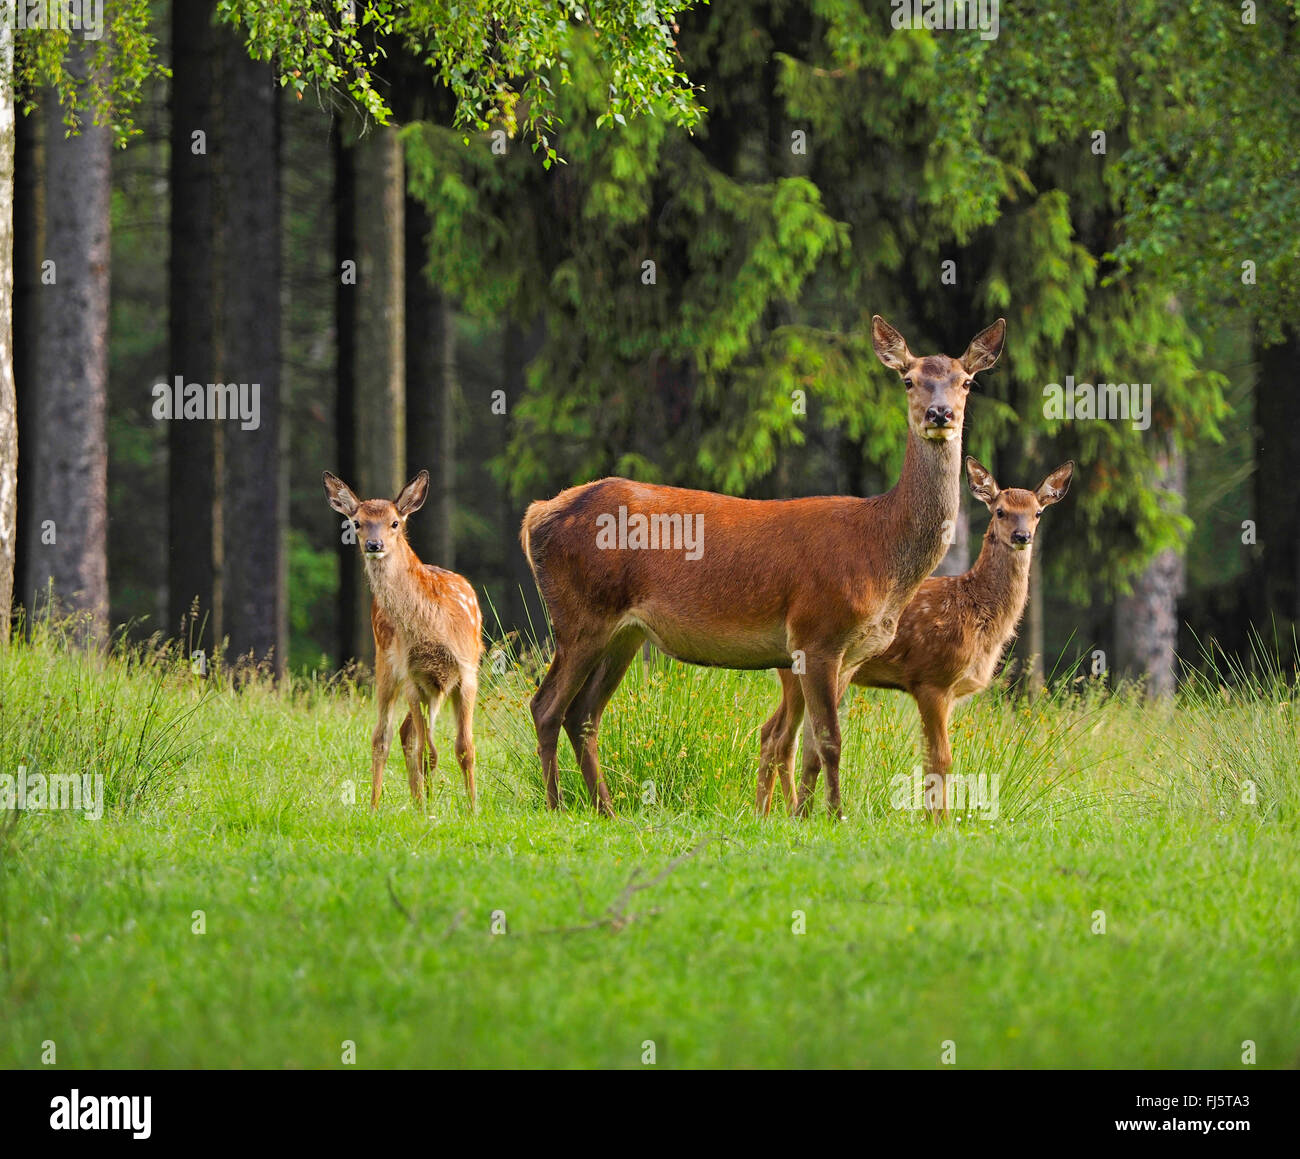 red deer (Cervus elaphus), hind with fawns, Germany, Saxony - Stock Image